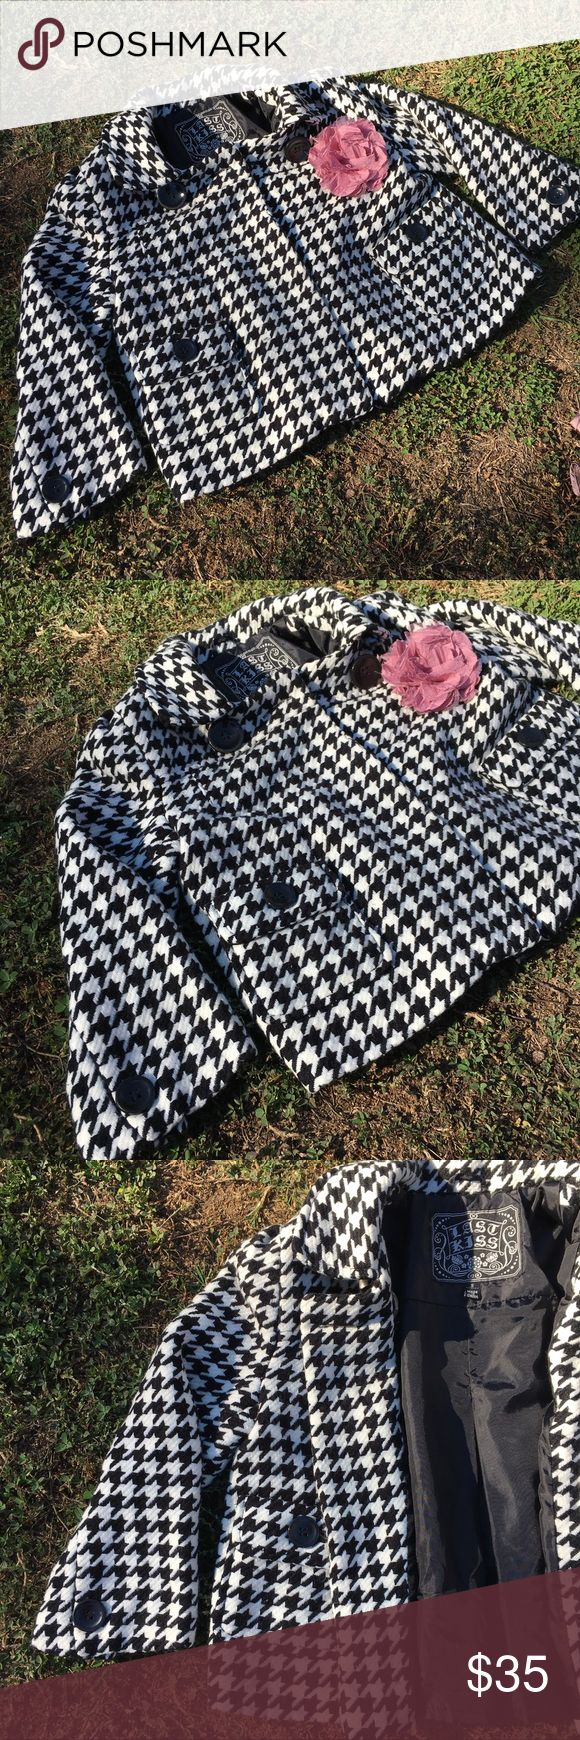 🍂🌸Darling Houndstooth Crop Jacket🌸🍂 🍂🌸Darling Houndstooth Crop Jacket🌸🍂 This is such a fun piece! The print is absolutely Gorgeous for any occasion! Dress it up or down, add a colored scarf and your set. It's lined on the inside, has big black buttons on top for looks and pockets on the side.  Pleated in the back for an extra flattering look! Super comfortable and warm! Great condition. Comes from a smoke-free home:)💕 Last Kiss Jackets & Coats Utility Jackets